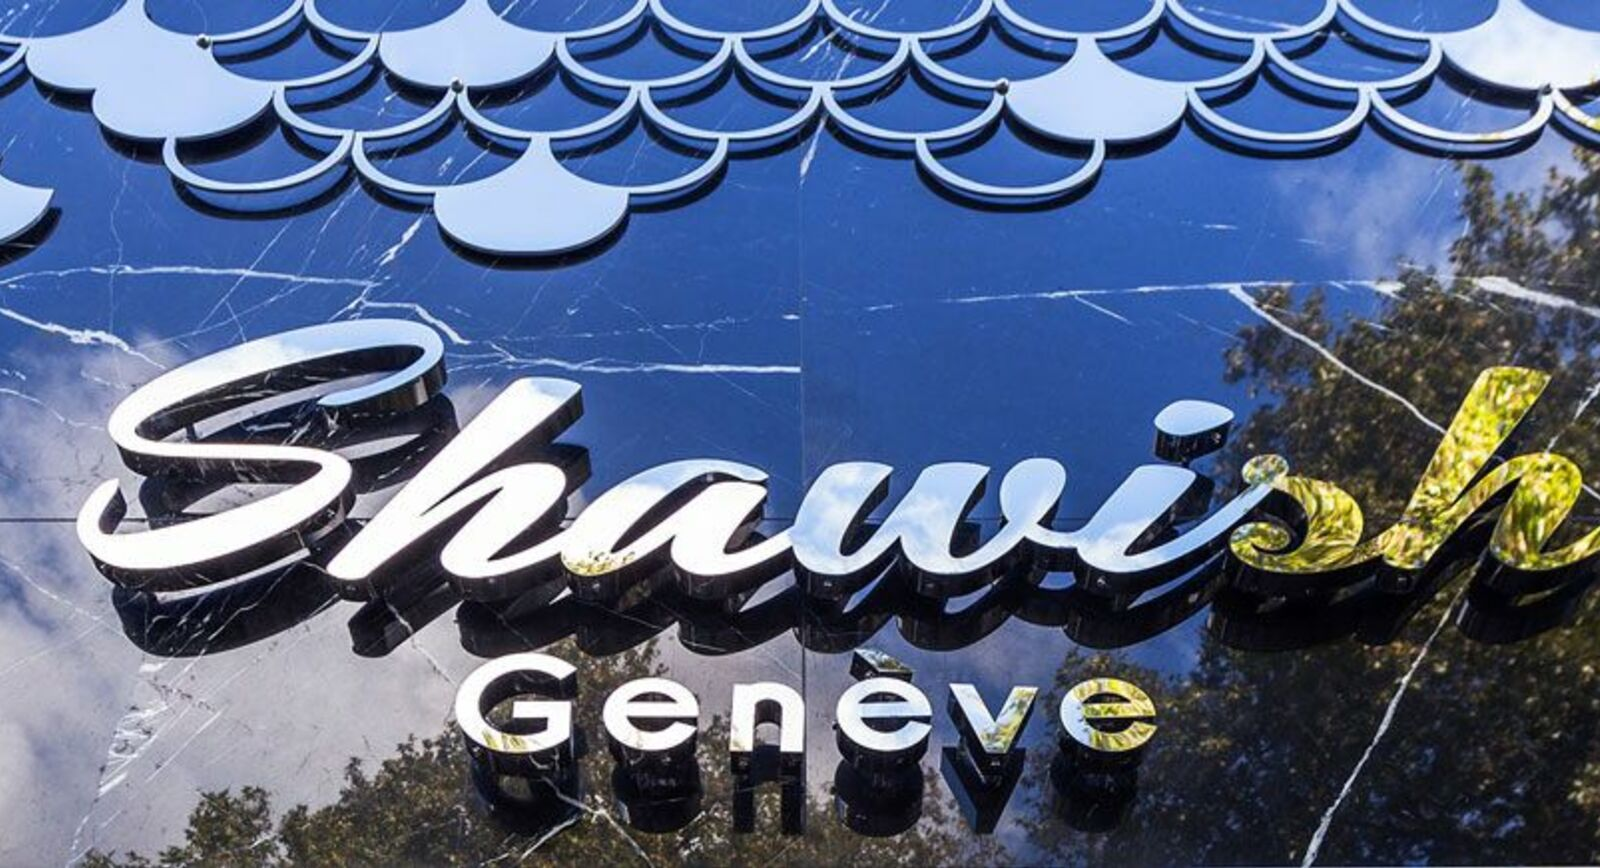 Shawish Genève opens its first flagship store in London